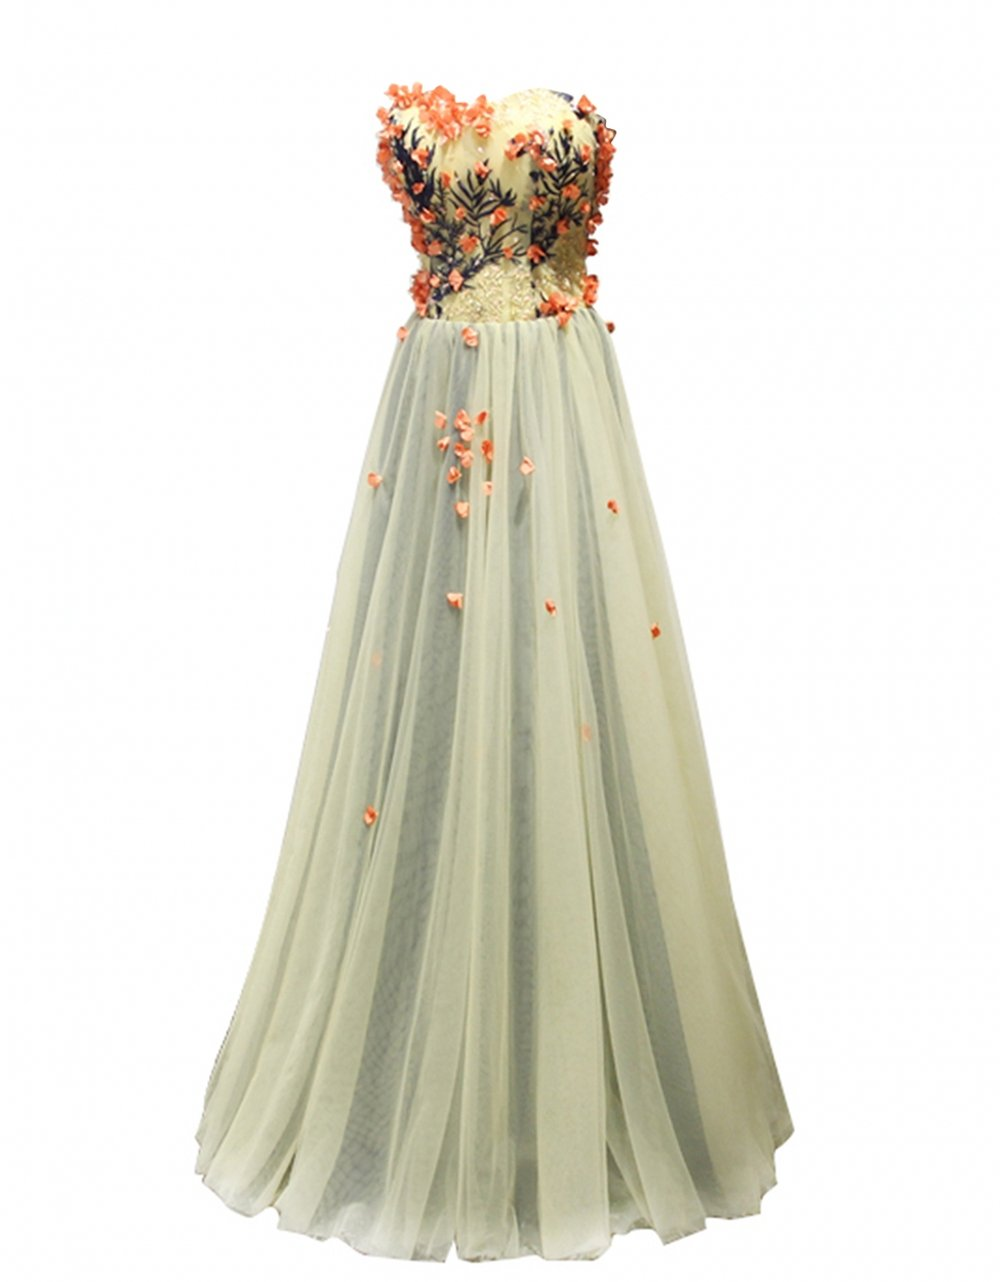 King's Love Women's Embroidery Flower Tulle Corset Long Evening Prom Dresses Grey US24W